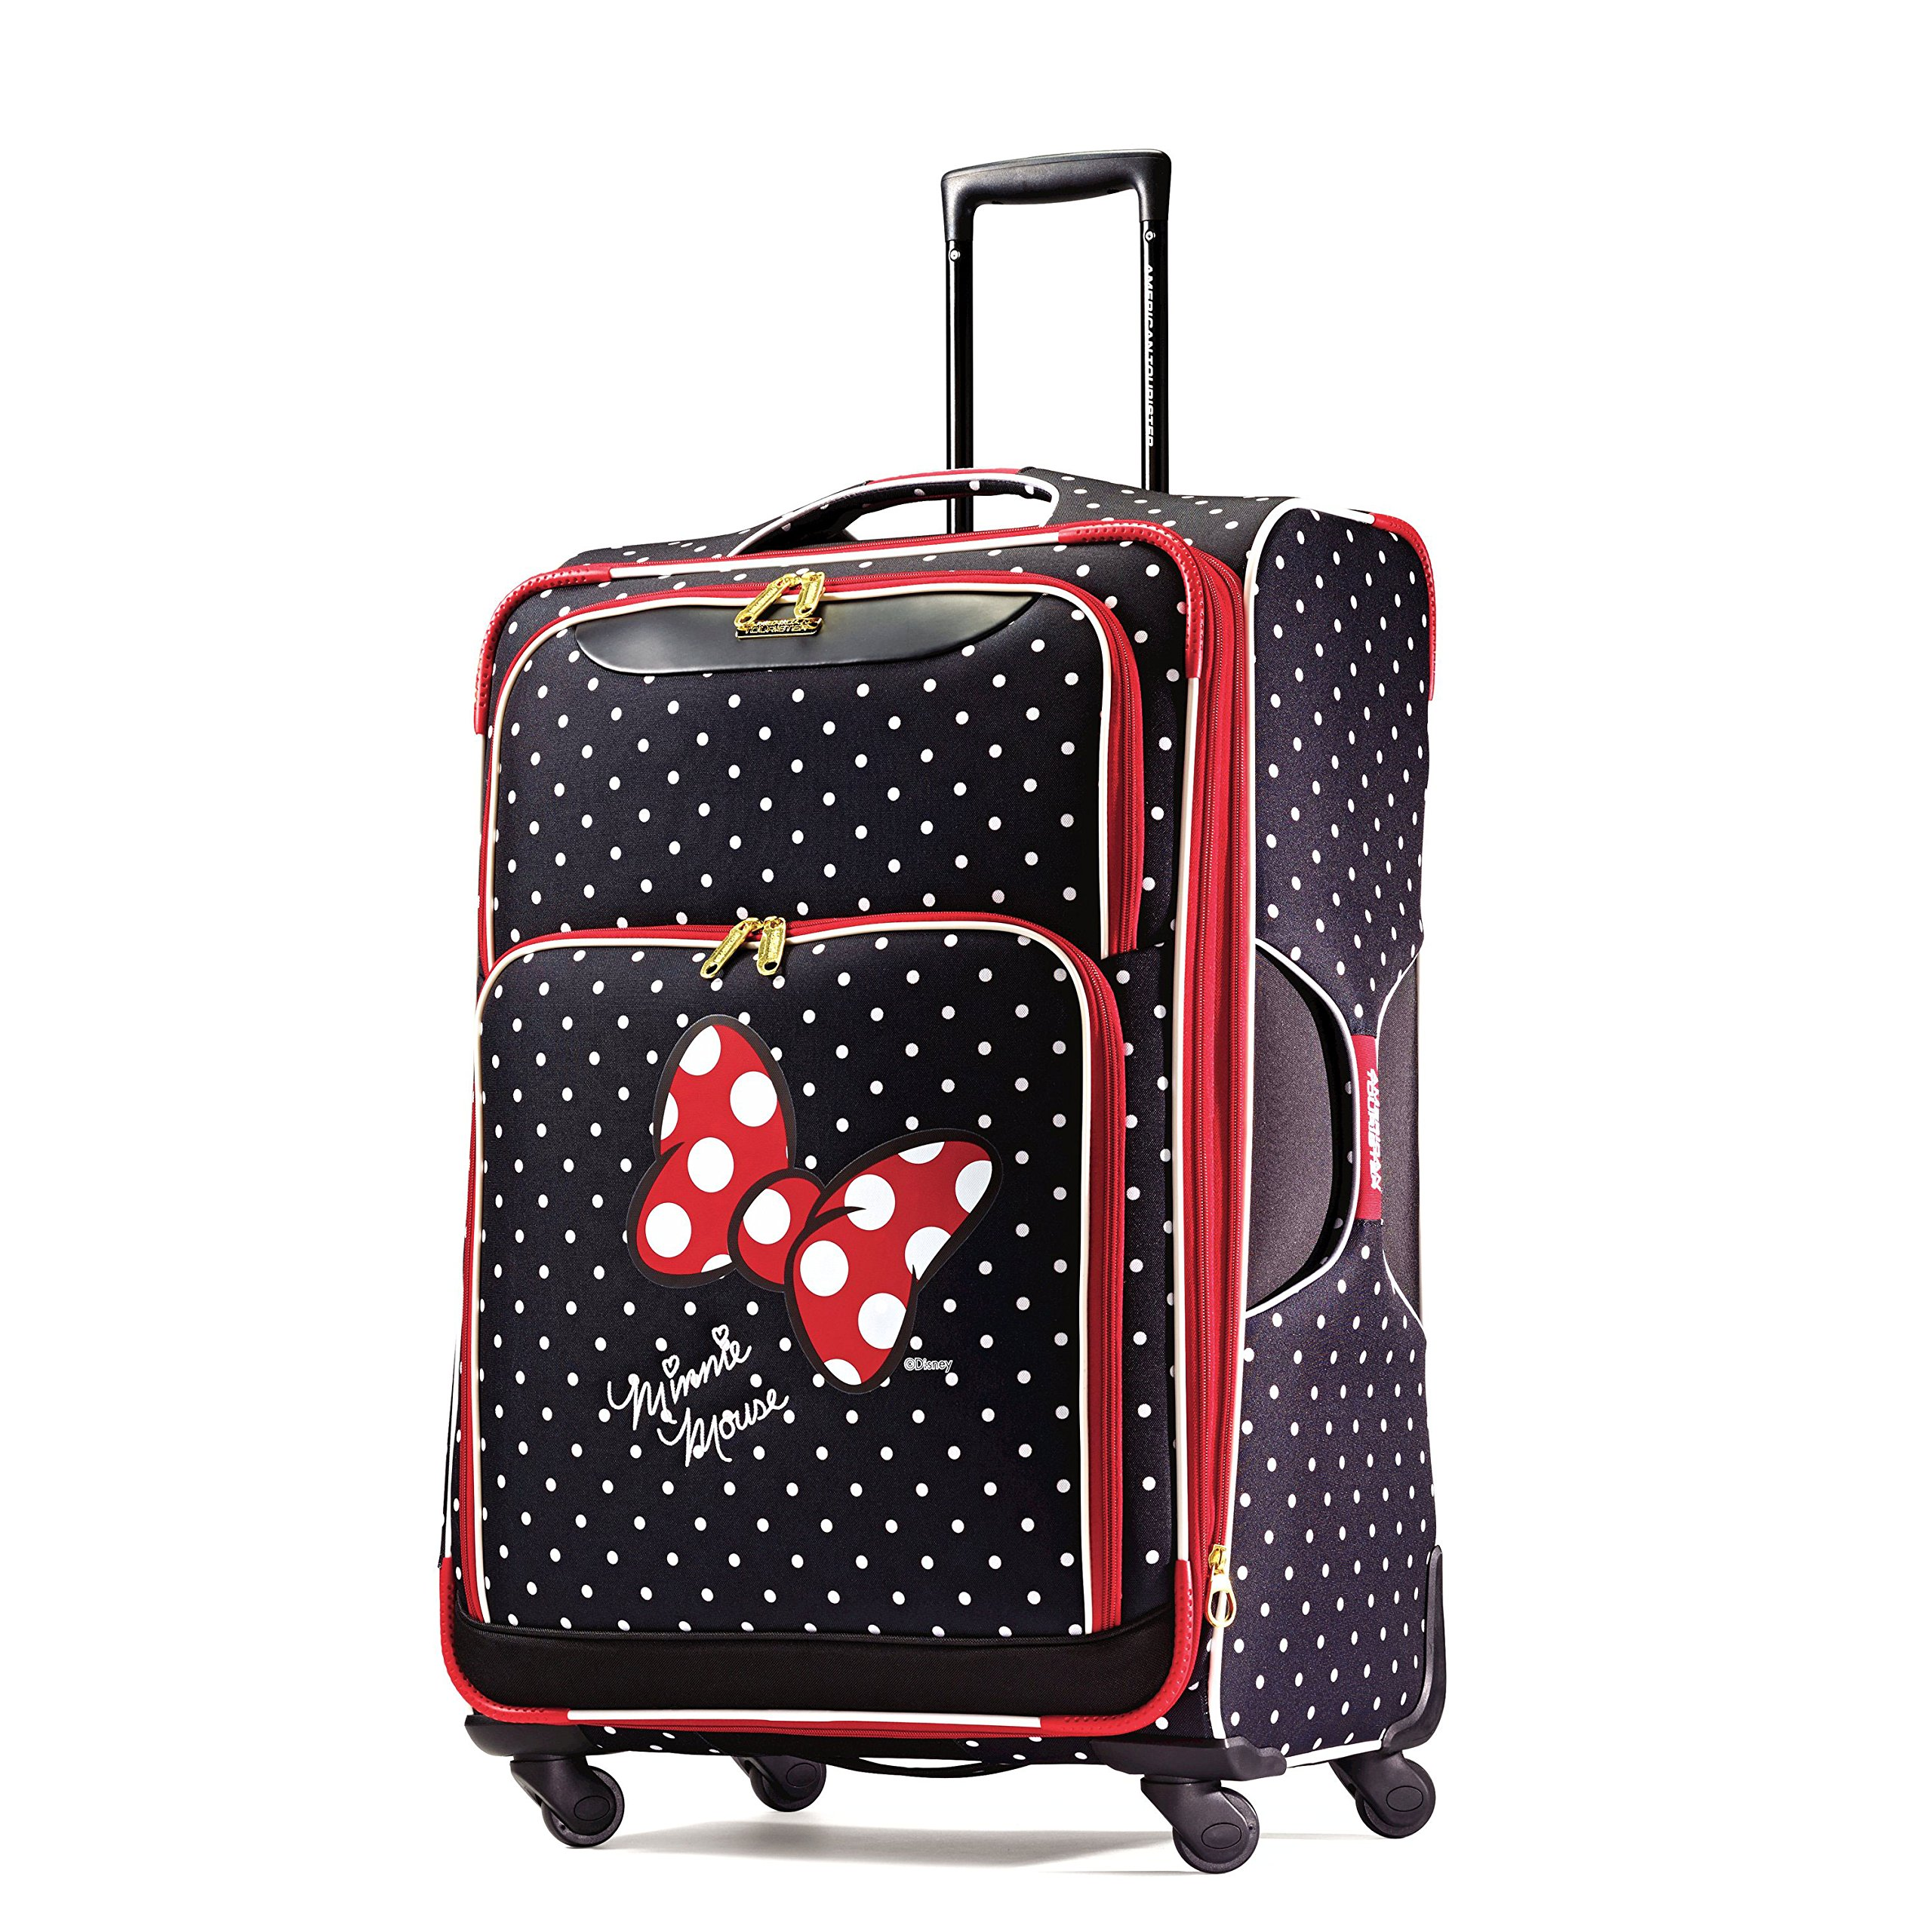 American Tourister Disney Minnie Mouse Red Bow Softside Spinner 28, Multi by American Tourister